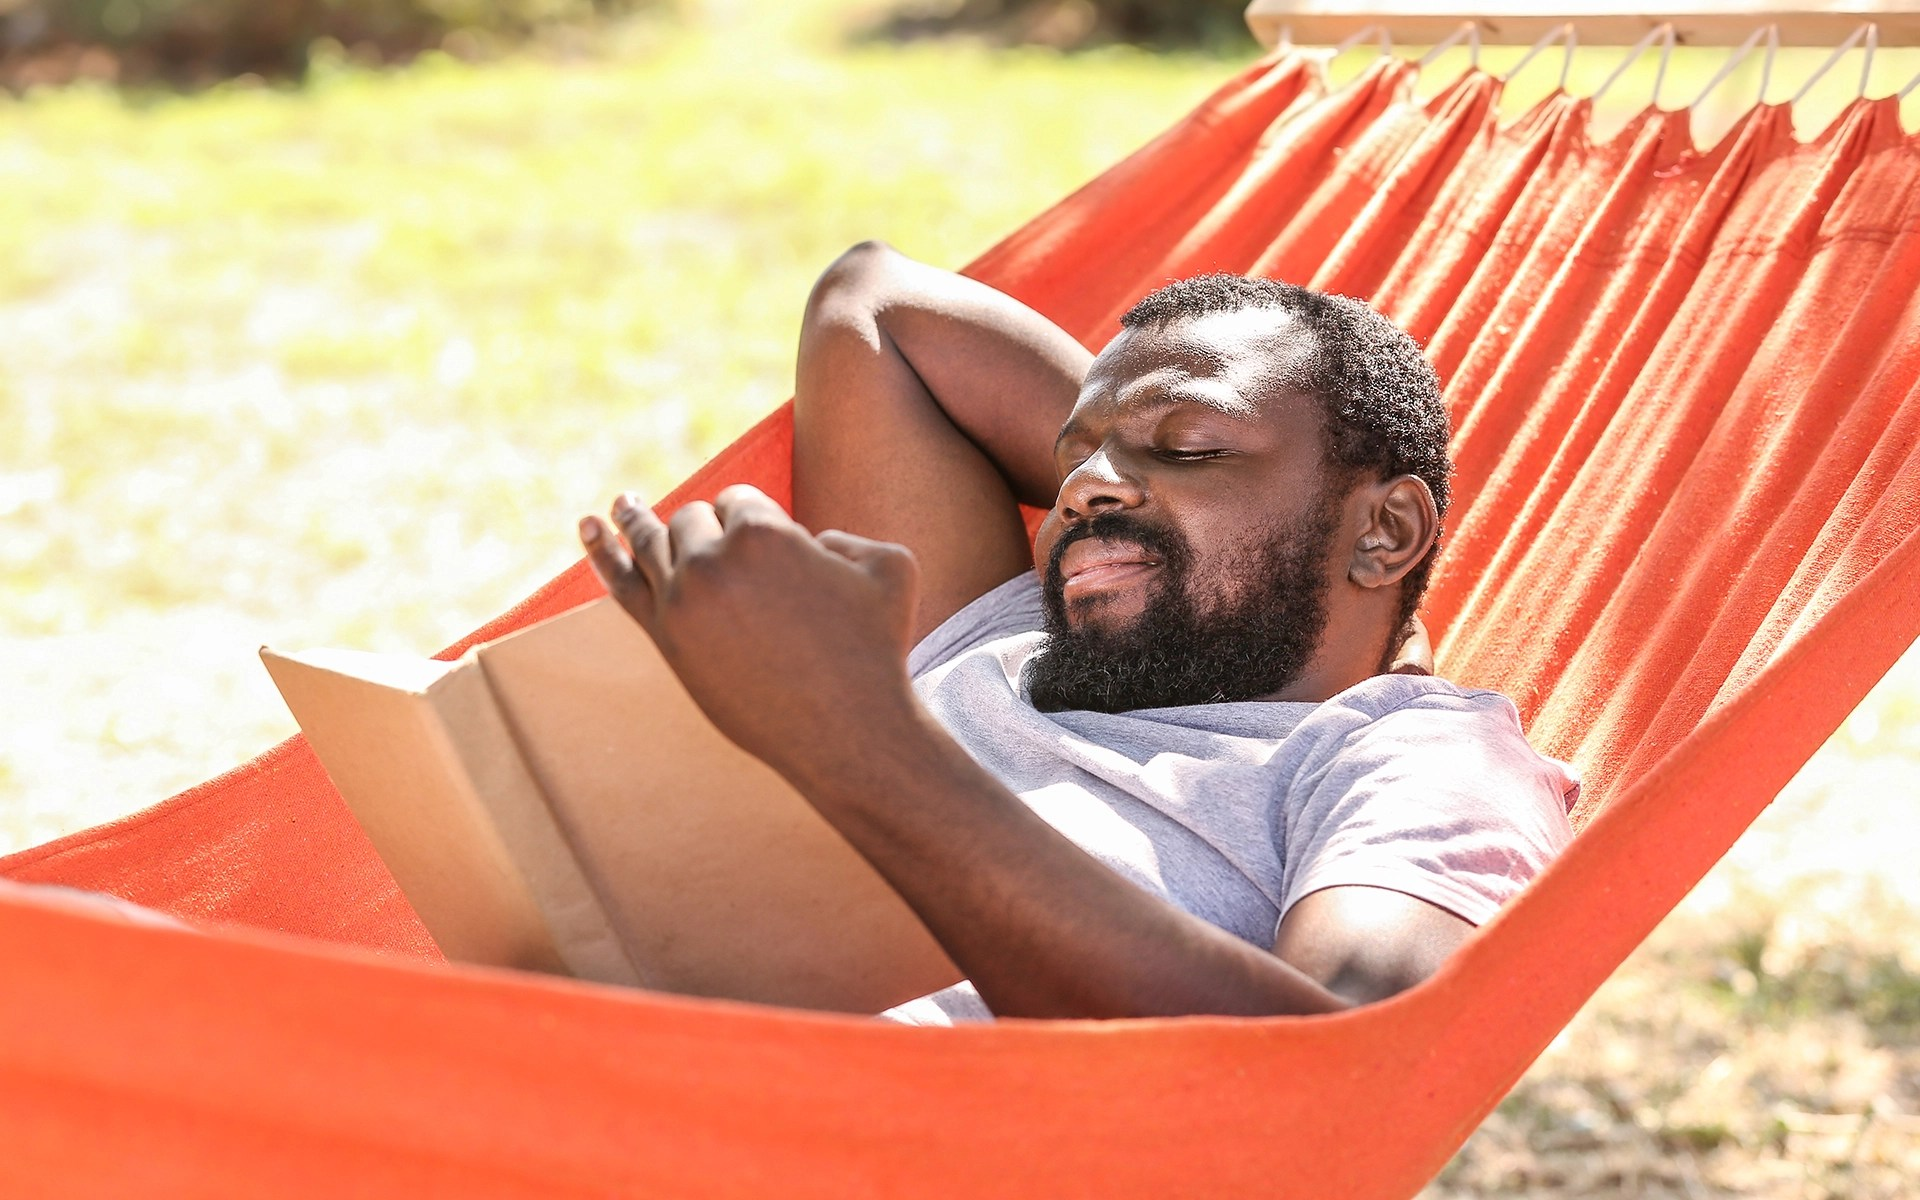 6 Books to Add to Your Summer Reading List - A man reading a book in a hammock